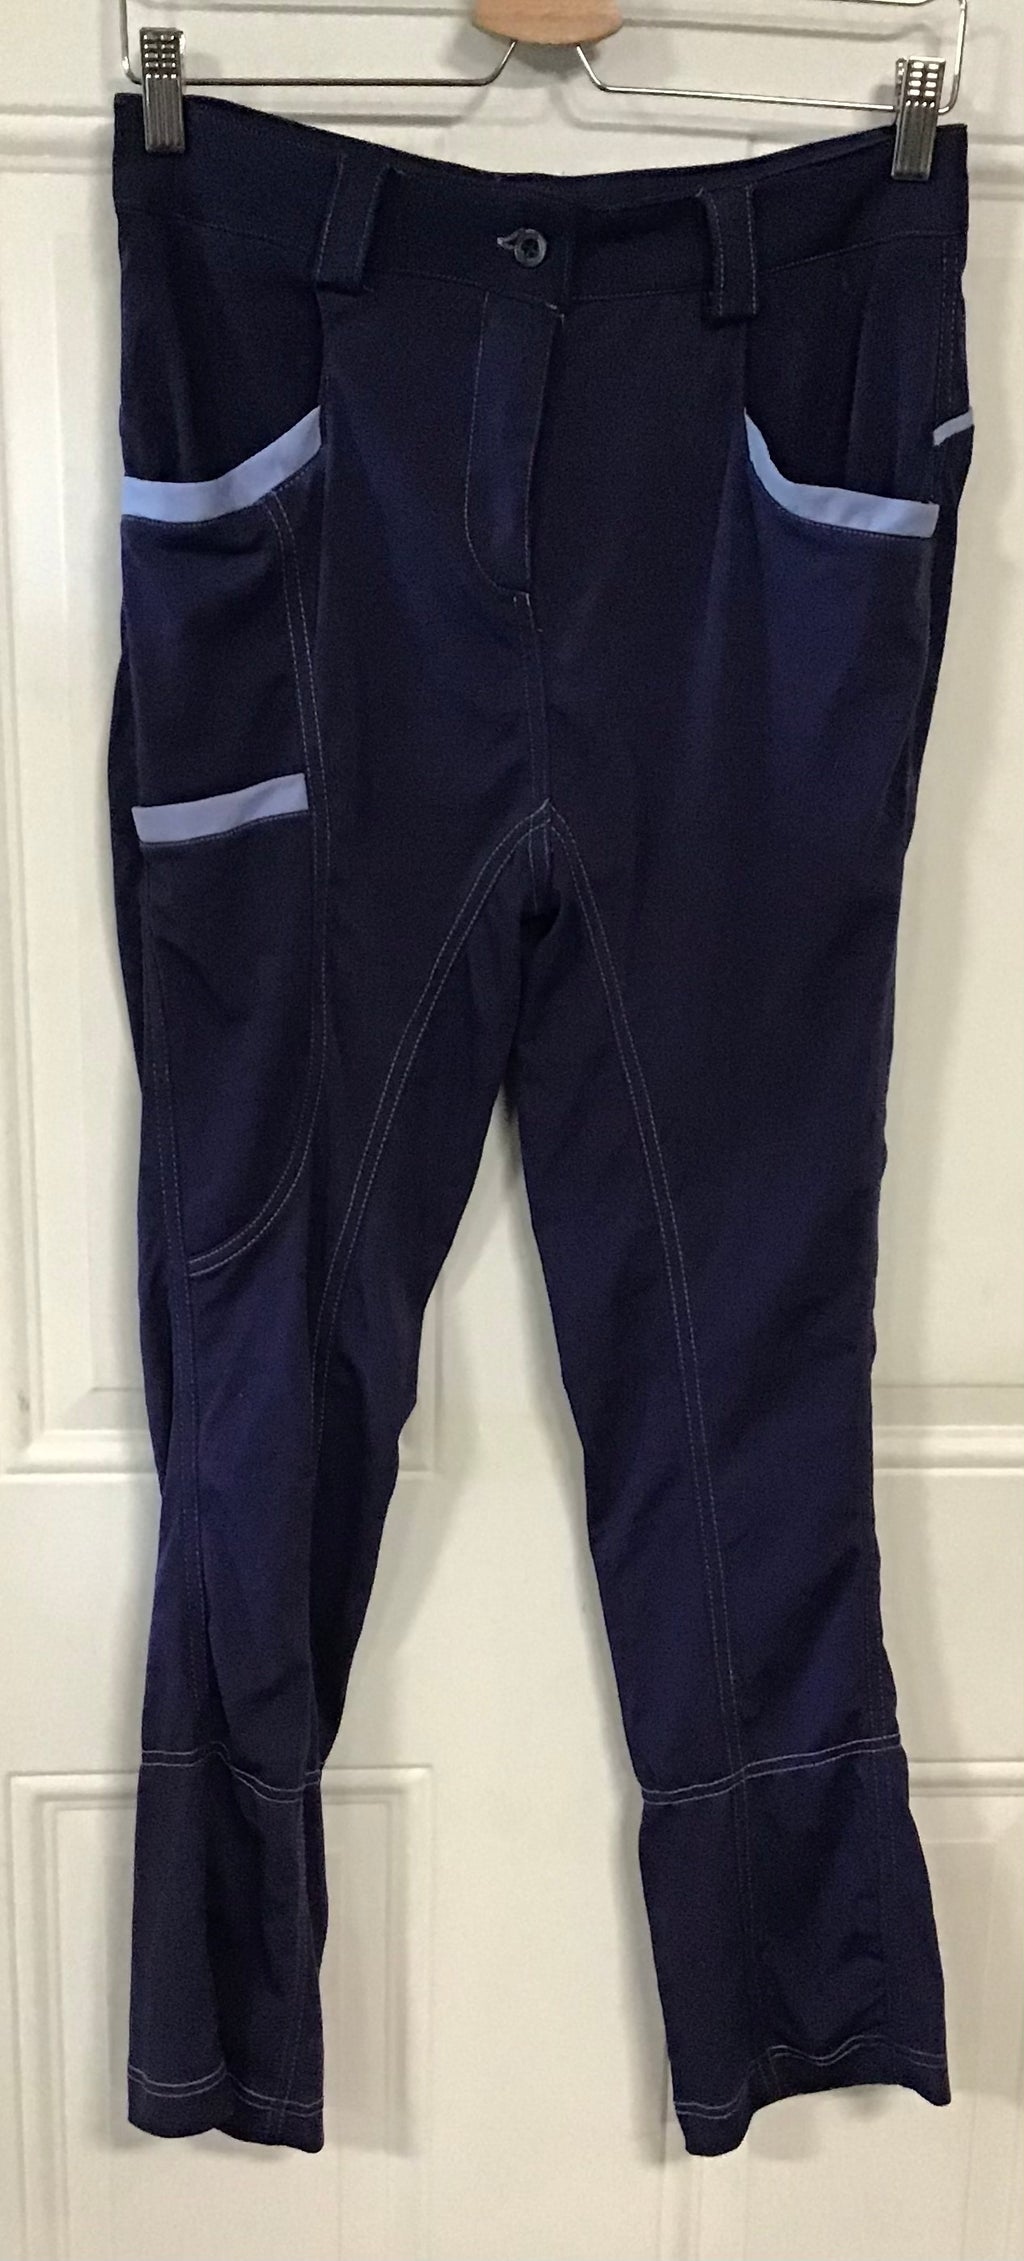 Ladies blue riding pant 32